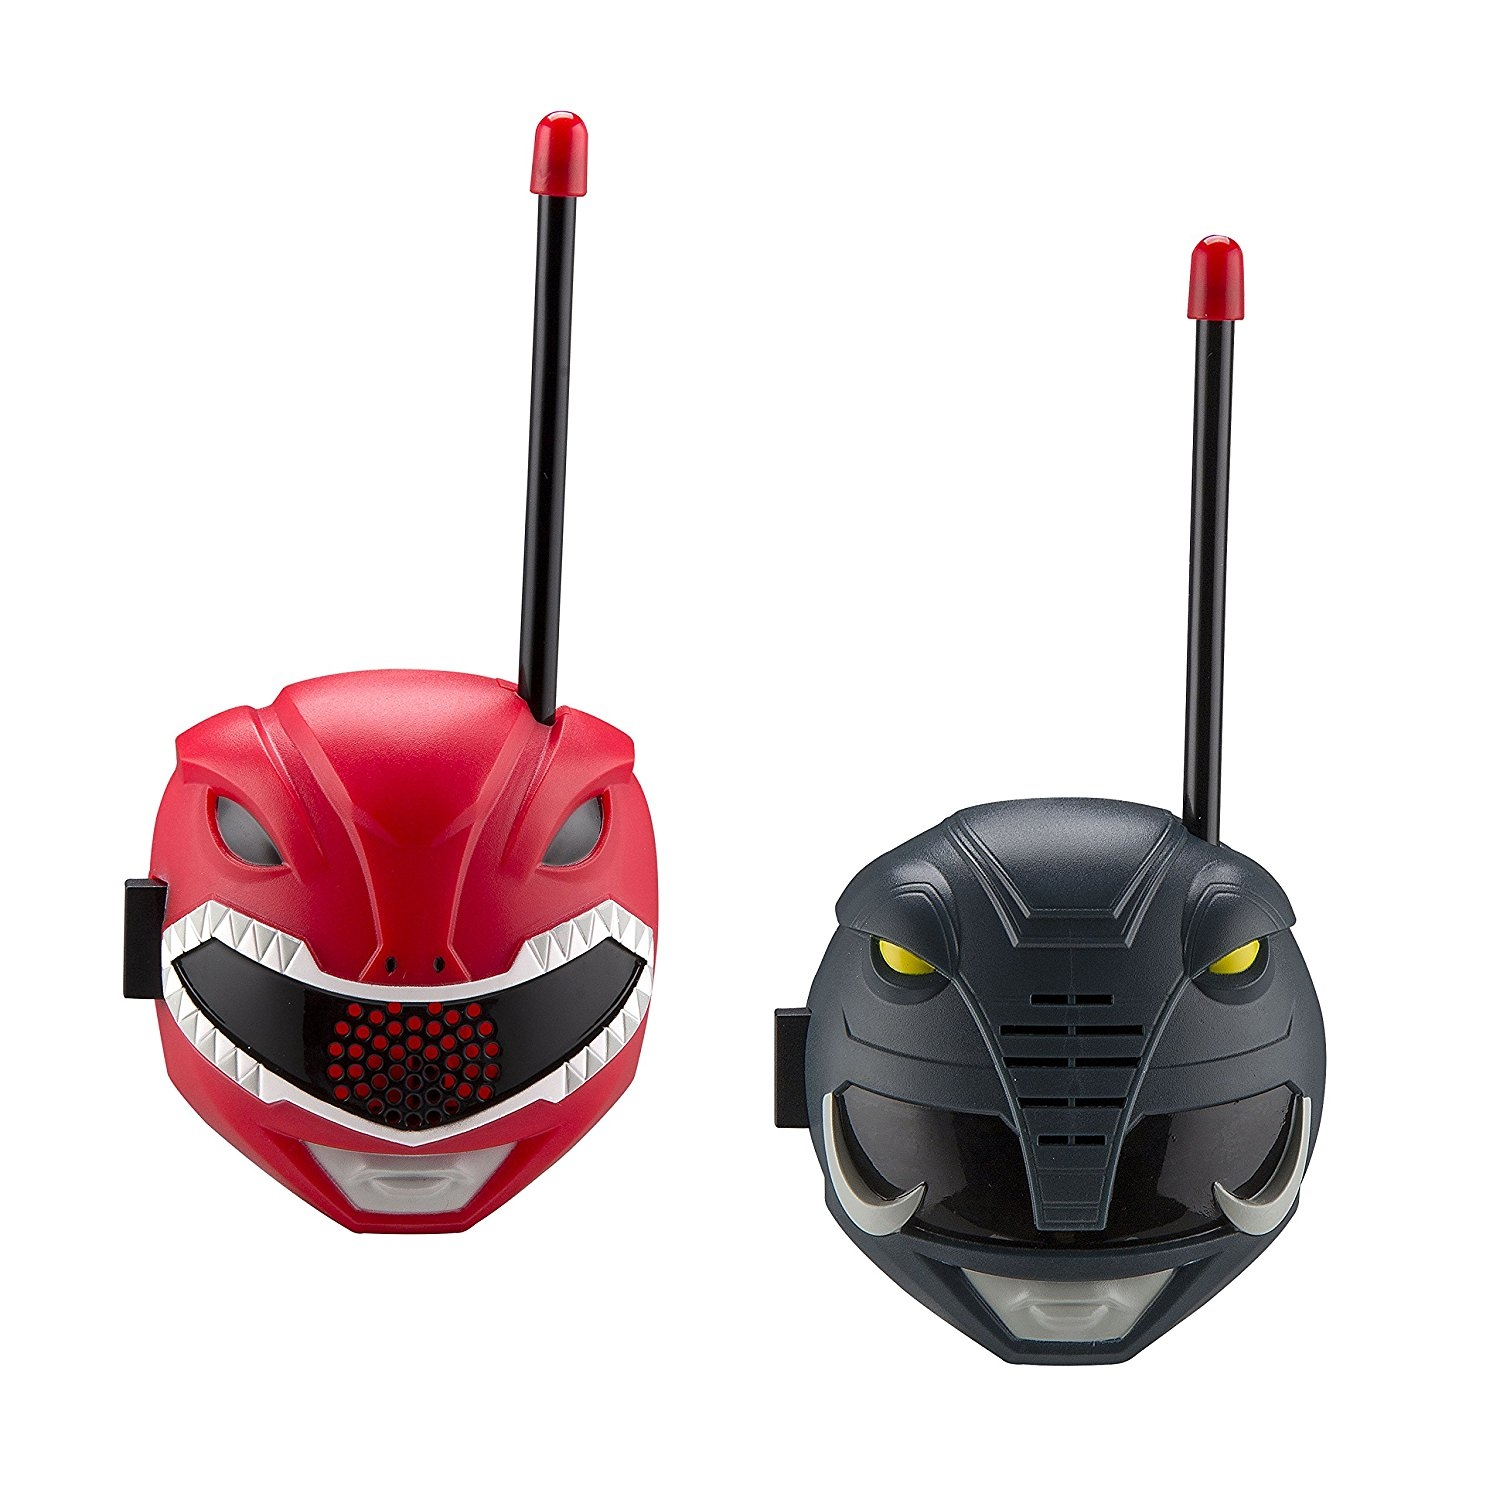 eKids Power Rangers Walkie Talkies Playset by eKids